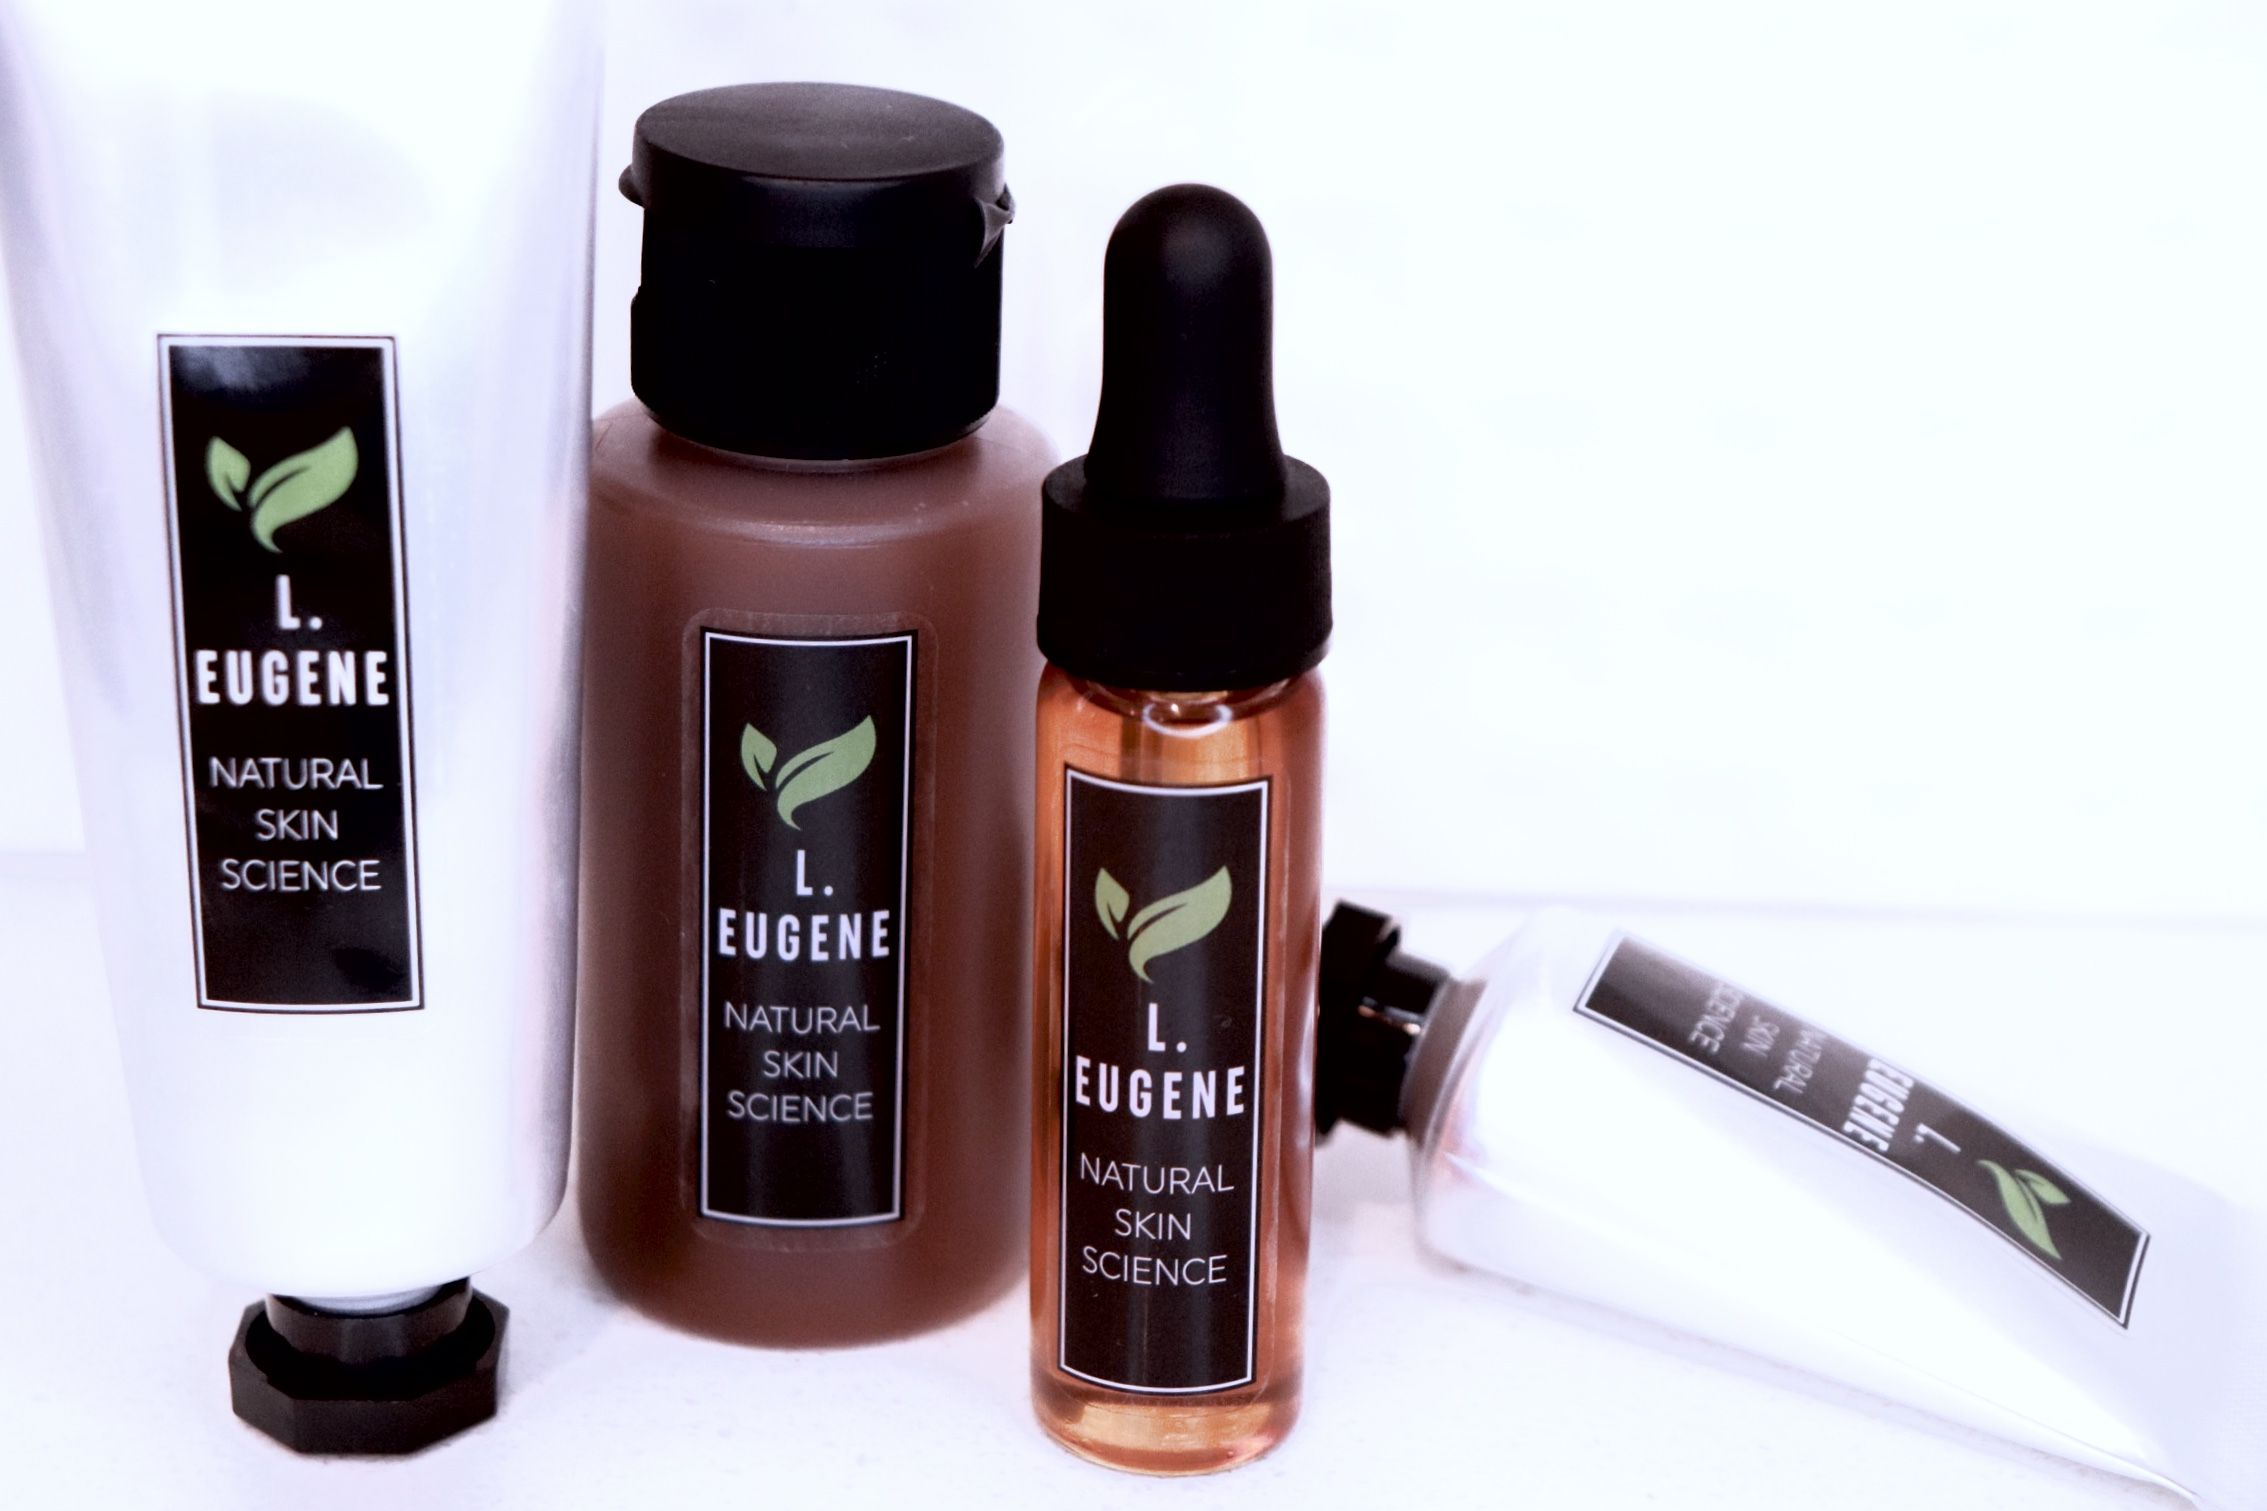 L Eugene Natural Skin Science products are formulated to